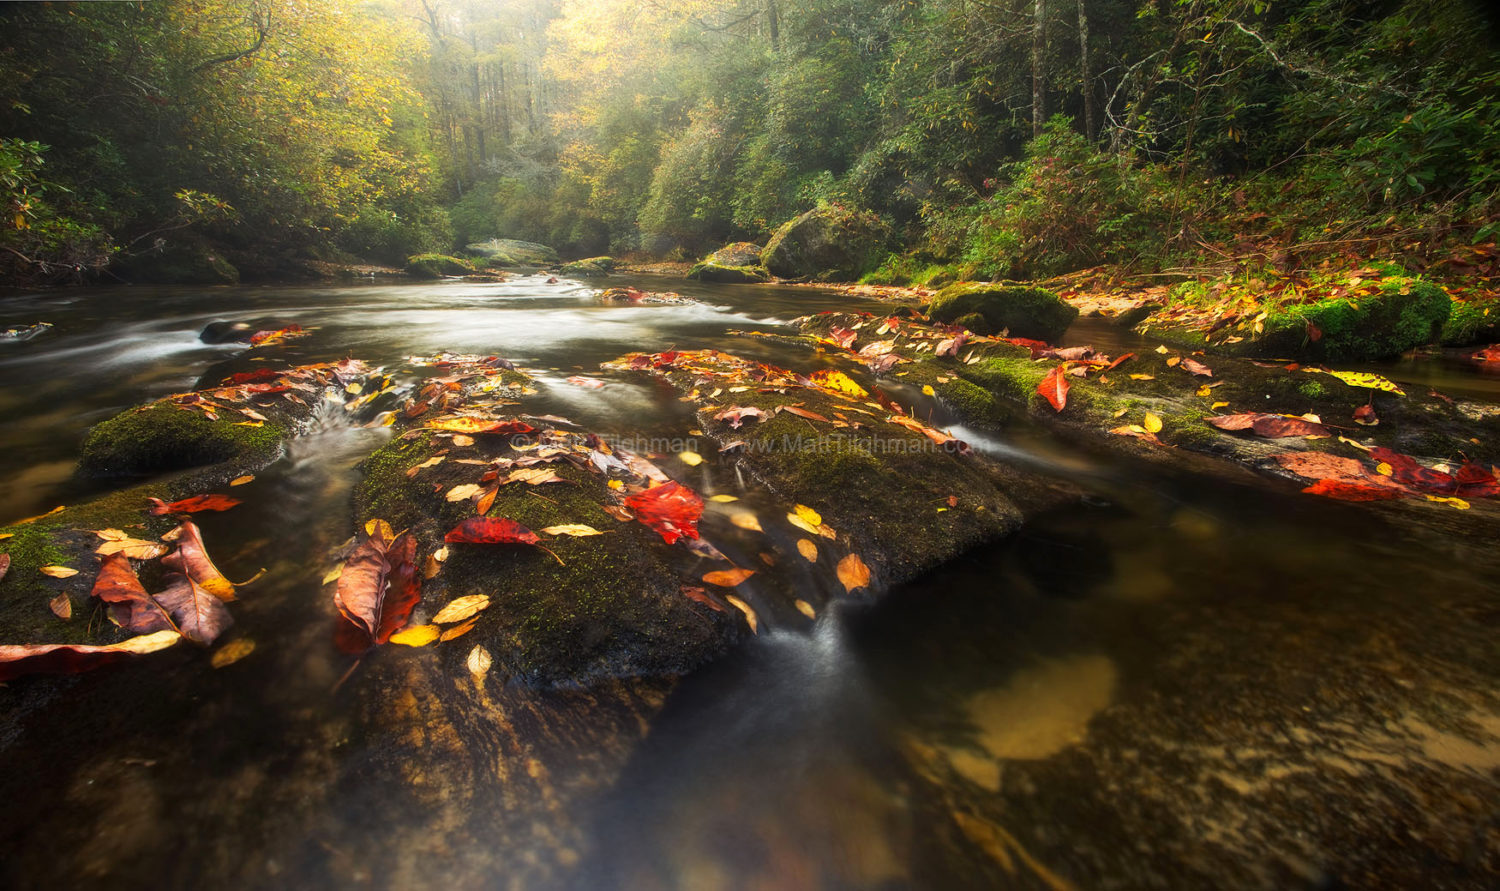 Fine art stock landscape photograph from the forests of Western North Carolina. The Chattooga River in Fall is among the most beautiful scenes nature has to offer.